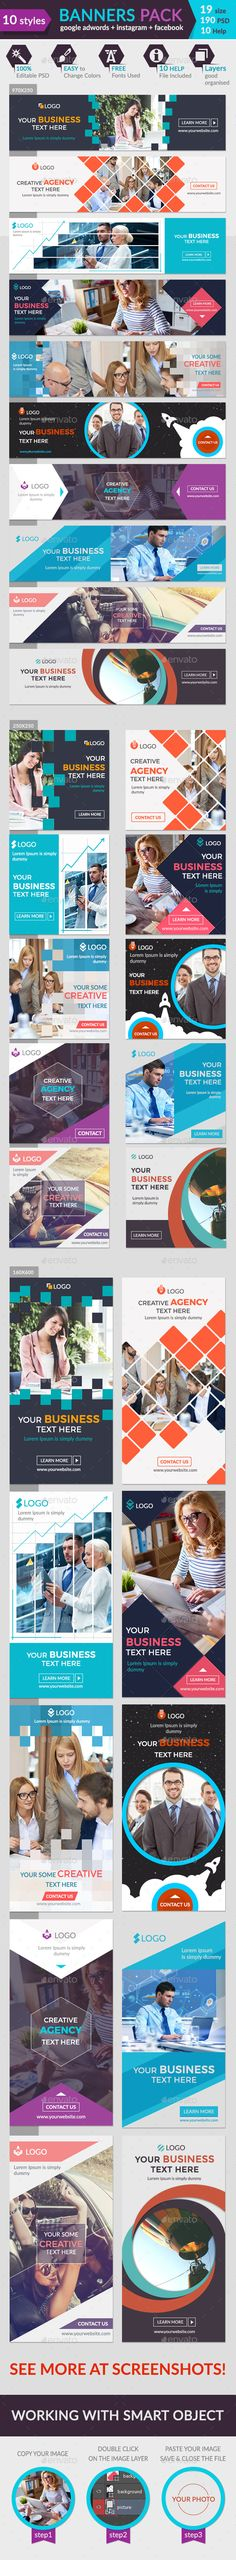 Banners Pack - Banners & Ads Web Elements                                                                                                                                                                                 More